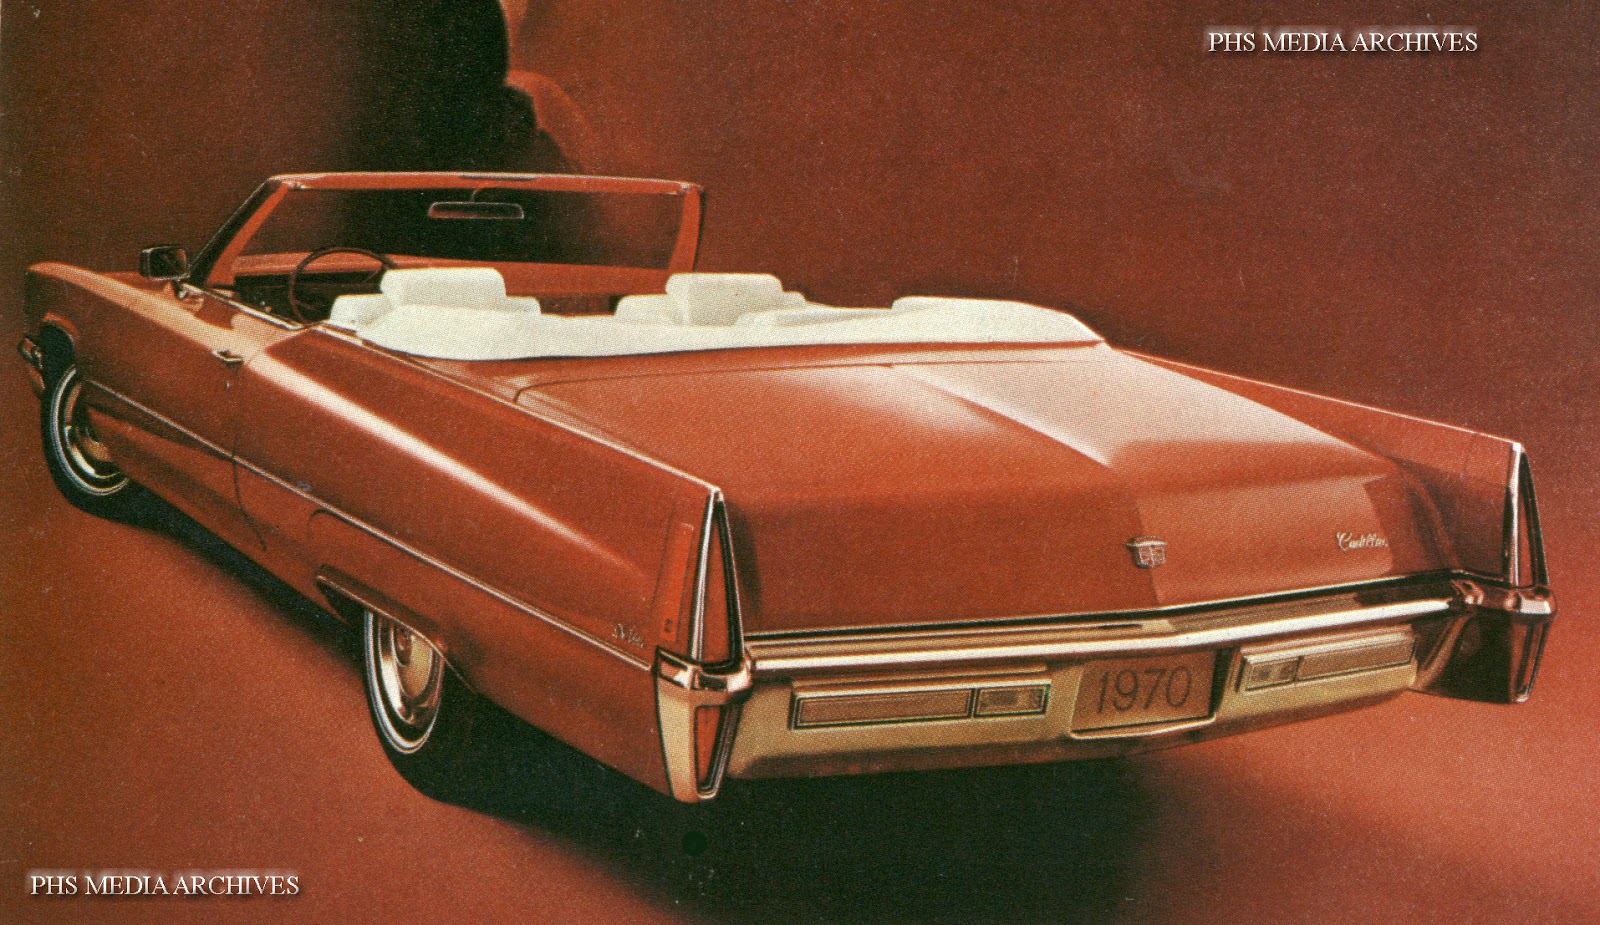 Yankee Tanks Series 1969 1970 Cadillac Deville Convertibles 472 Engine Wiring Diagram The Was Last Year For Rear Wheel Drive Convertible From